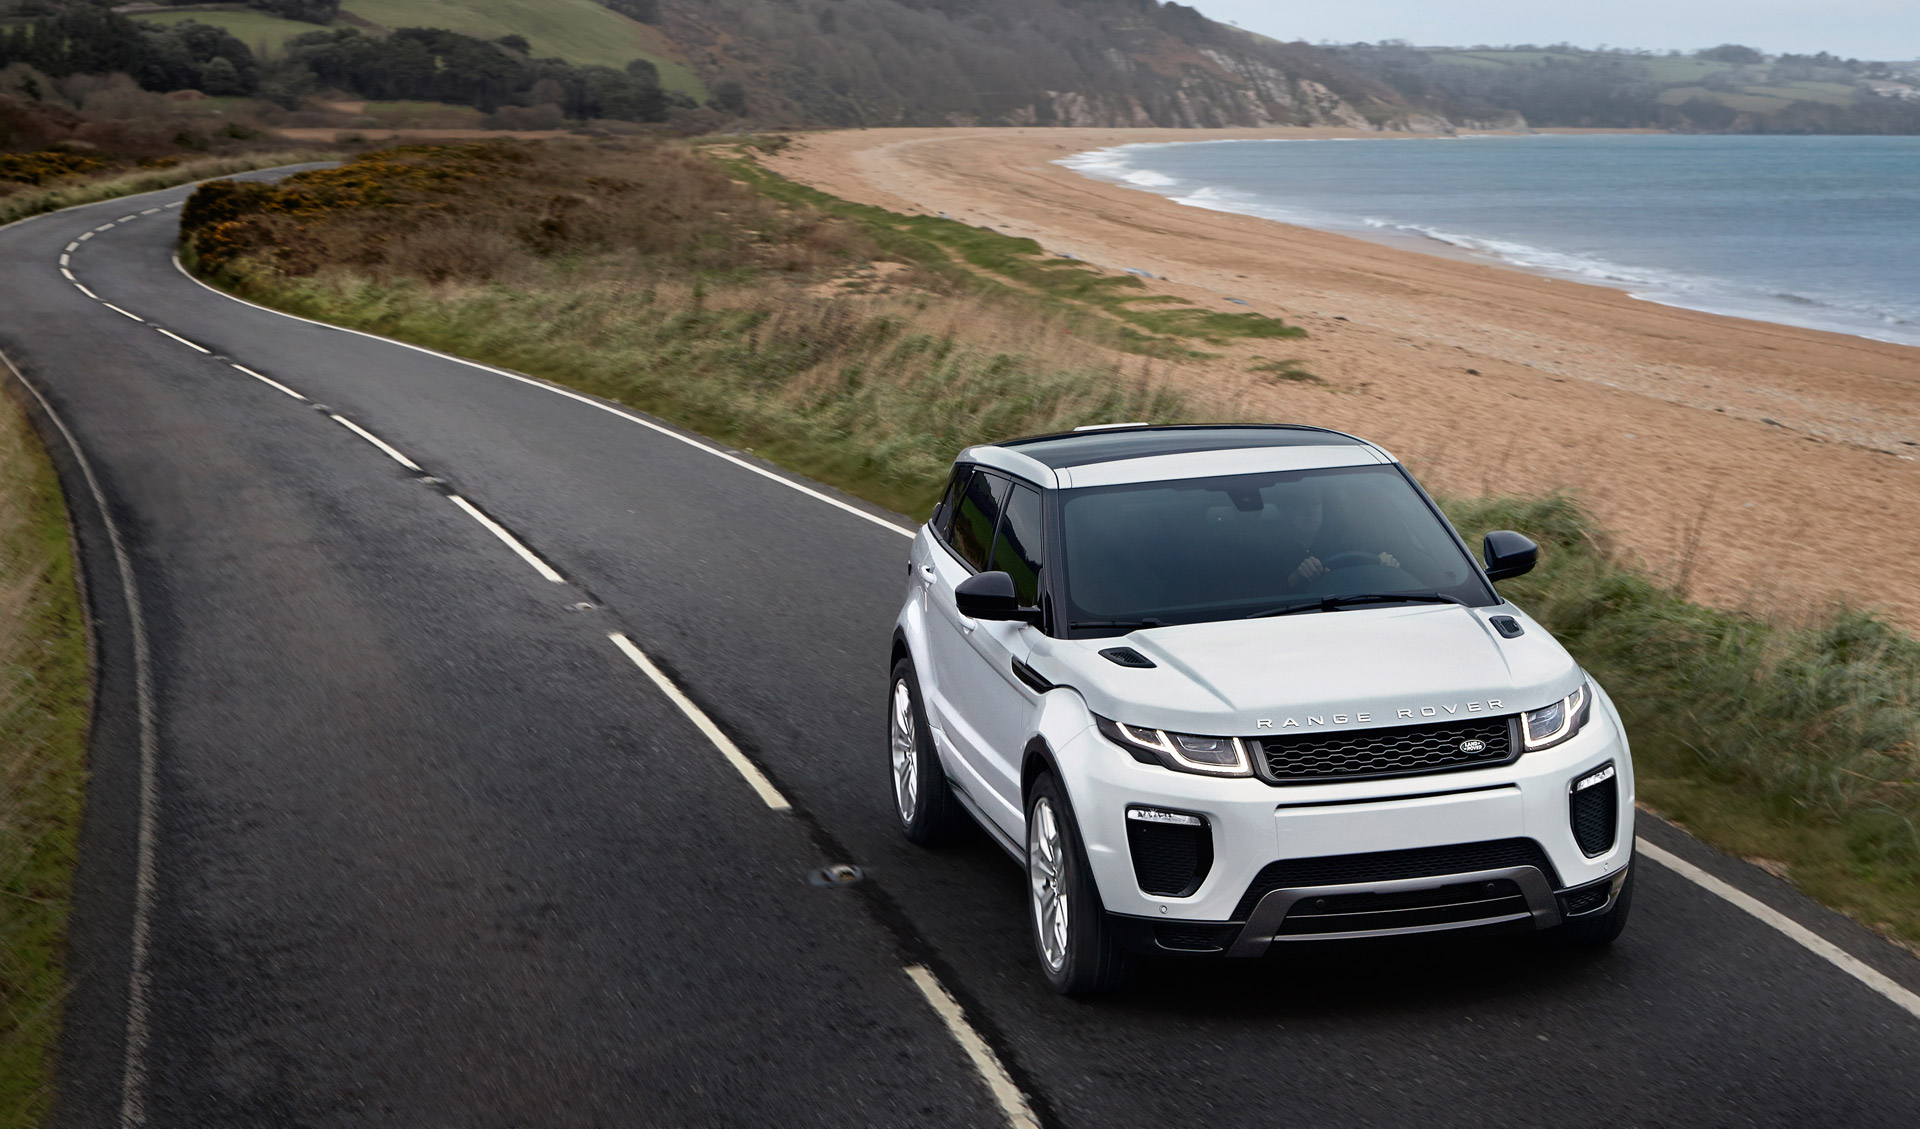 hight resolution of 2016 land rover range rover evoque revealed with led headlights new engine